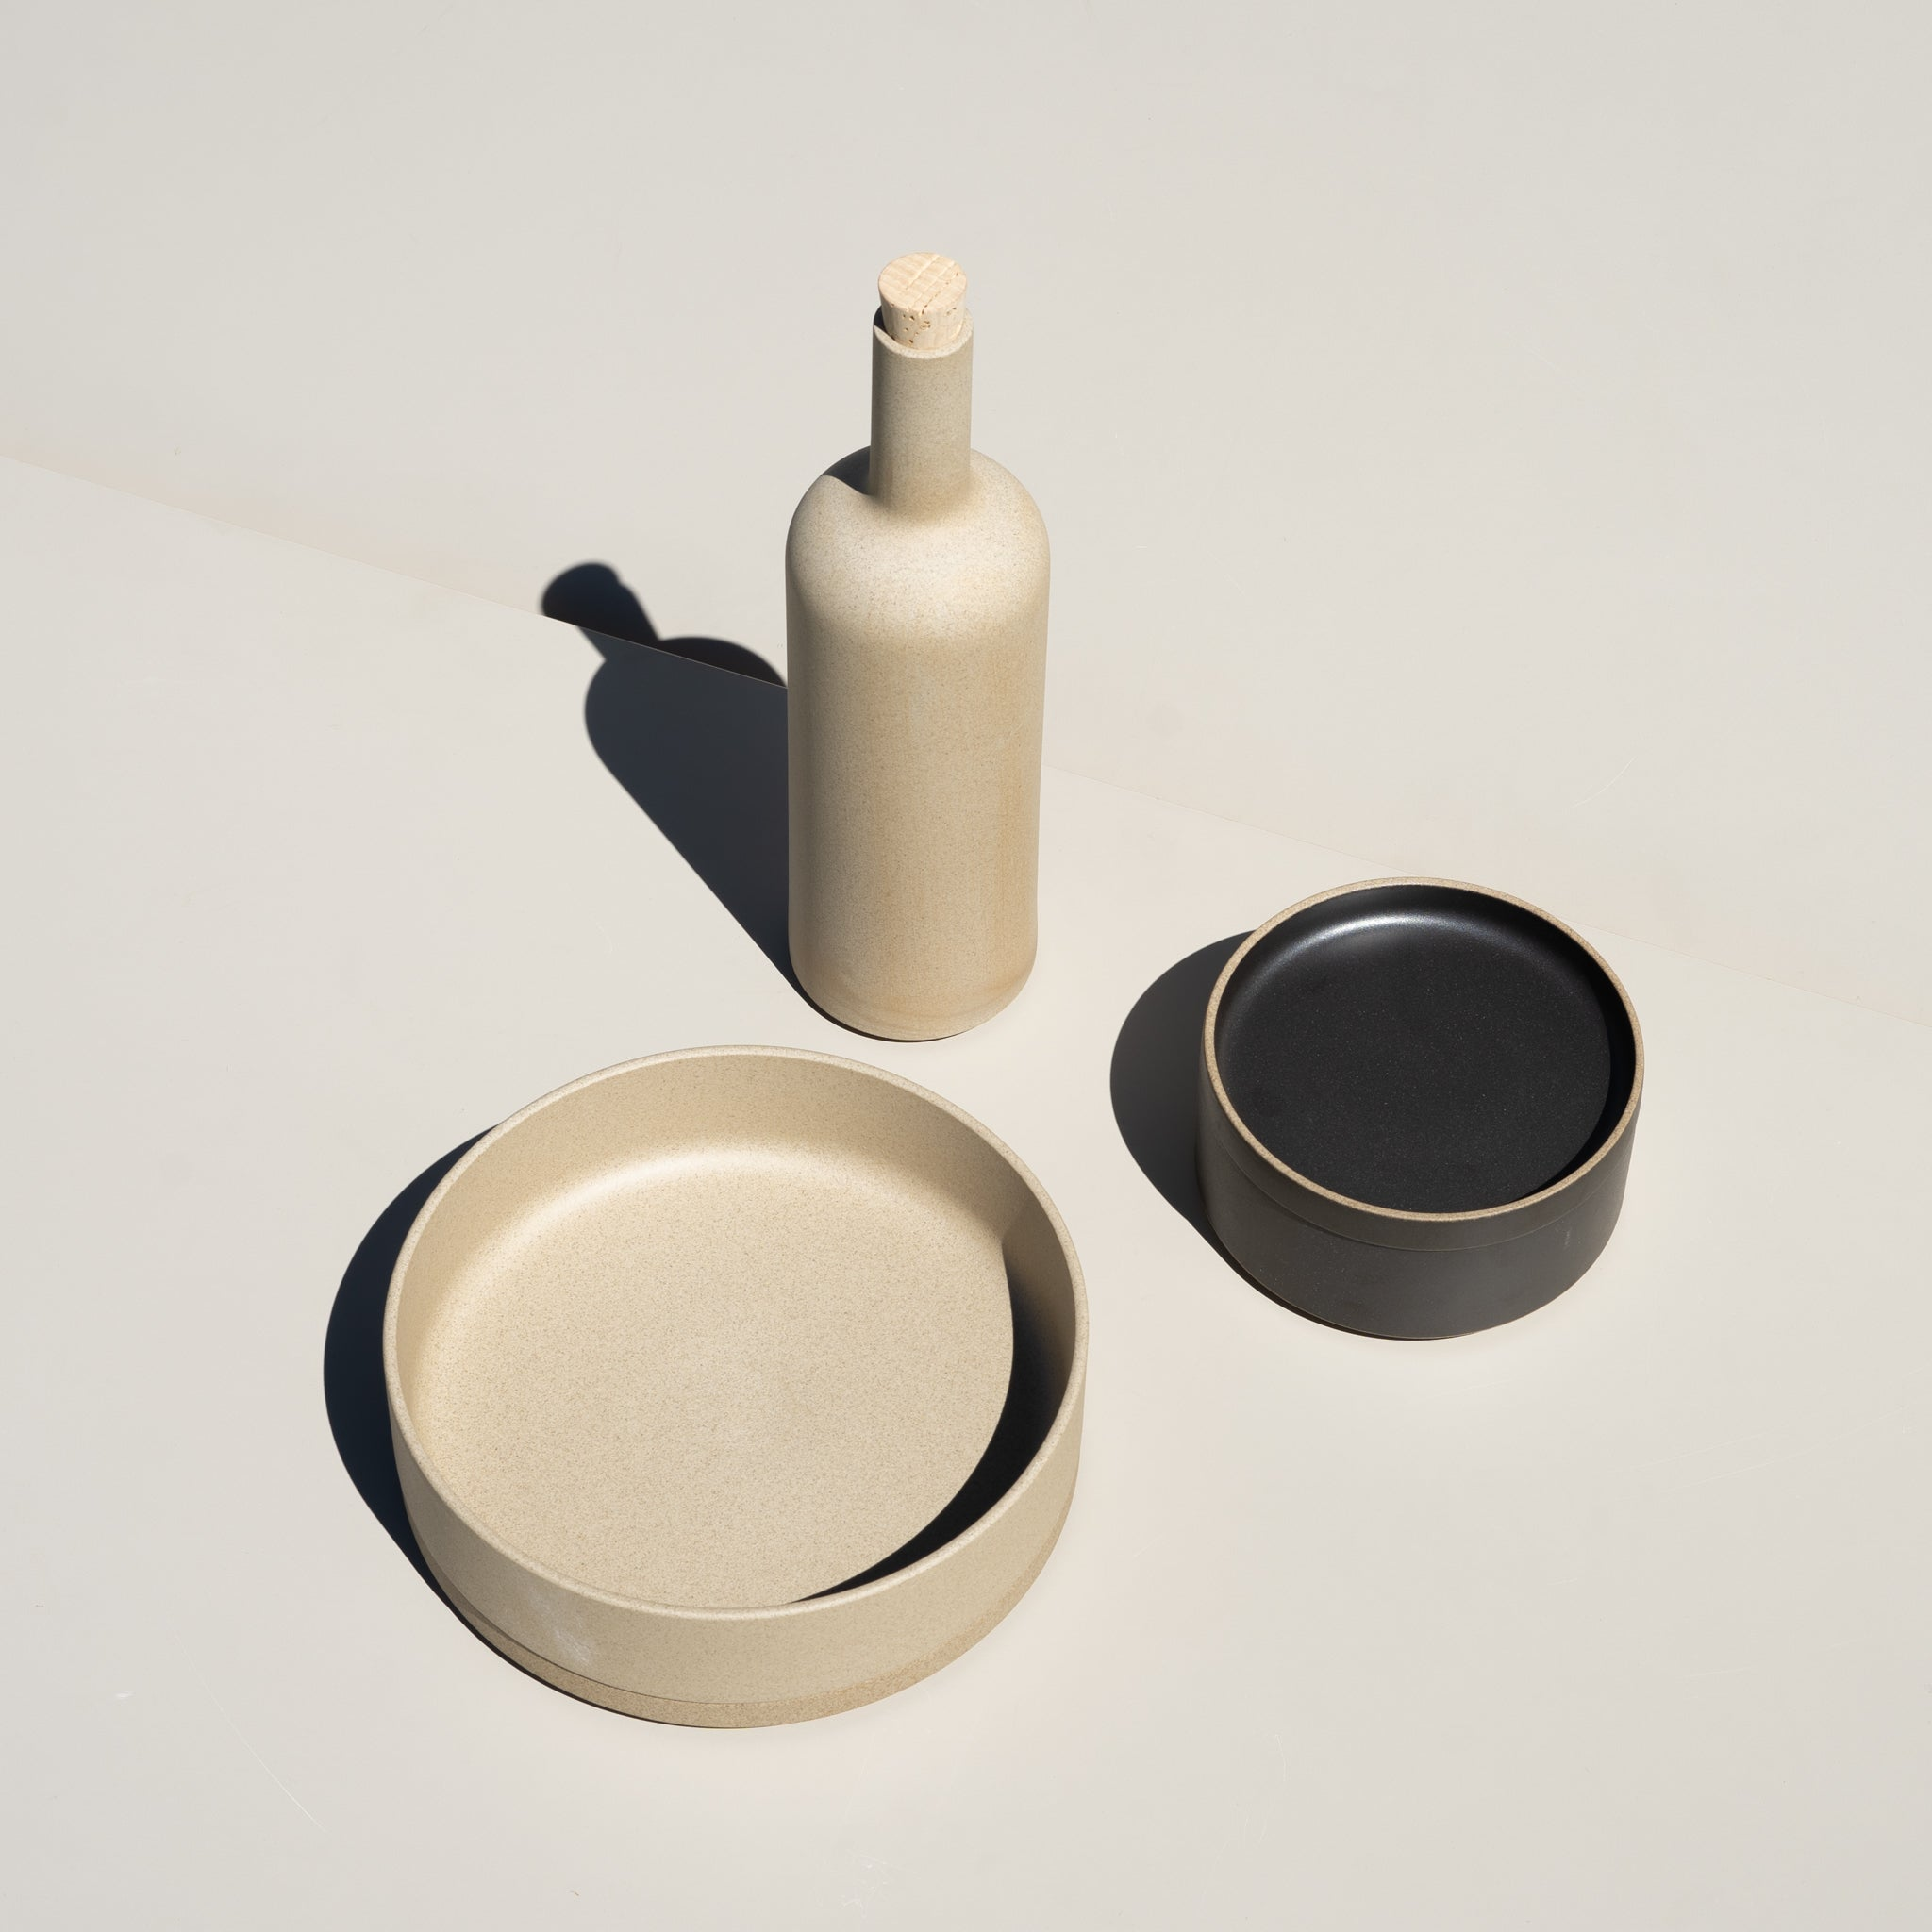 "Hasami Porcelain ceramic wares made in Japan, featuring the 5.5/8"" plate in black finish."